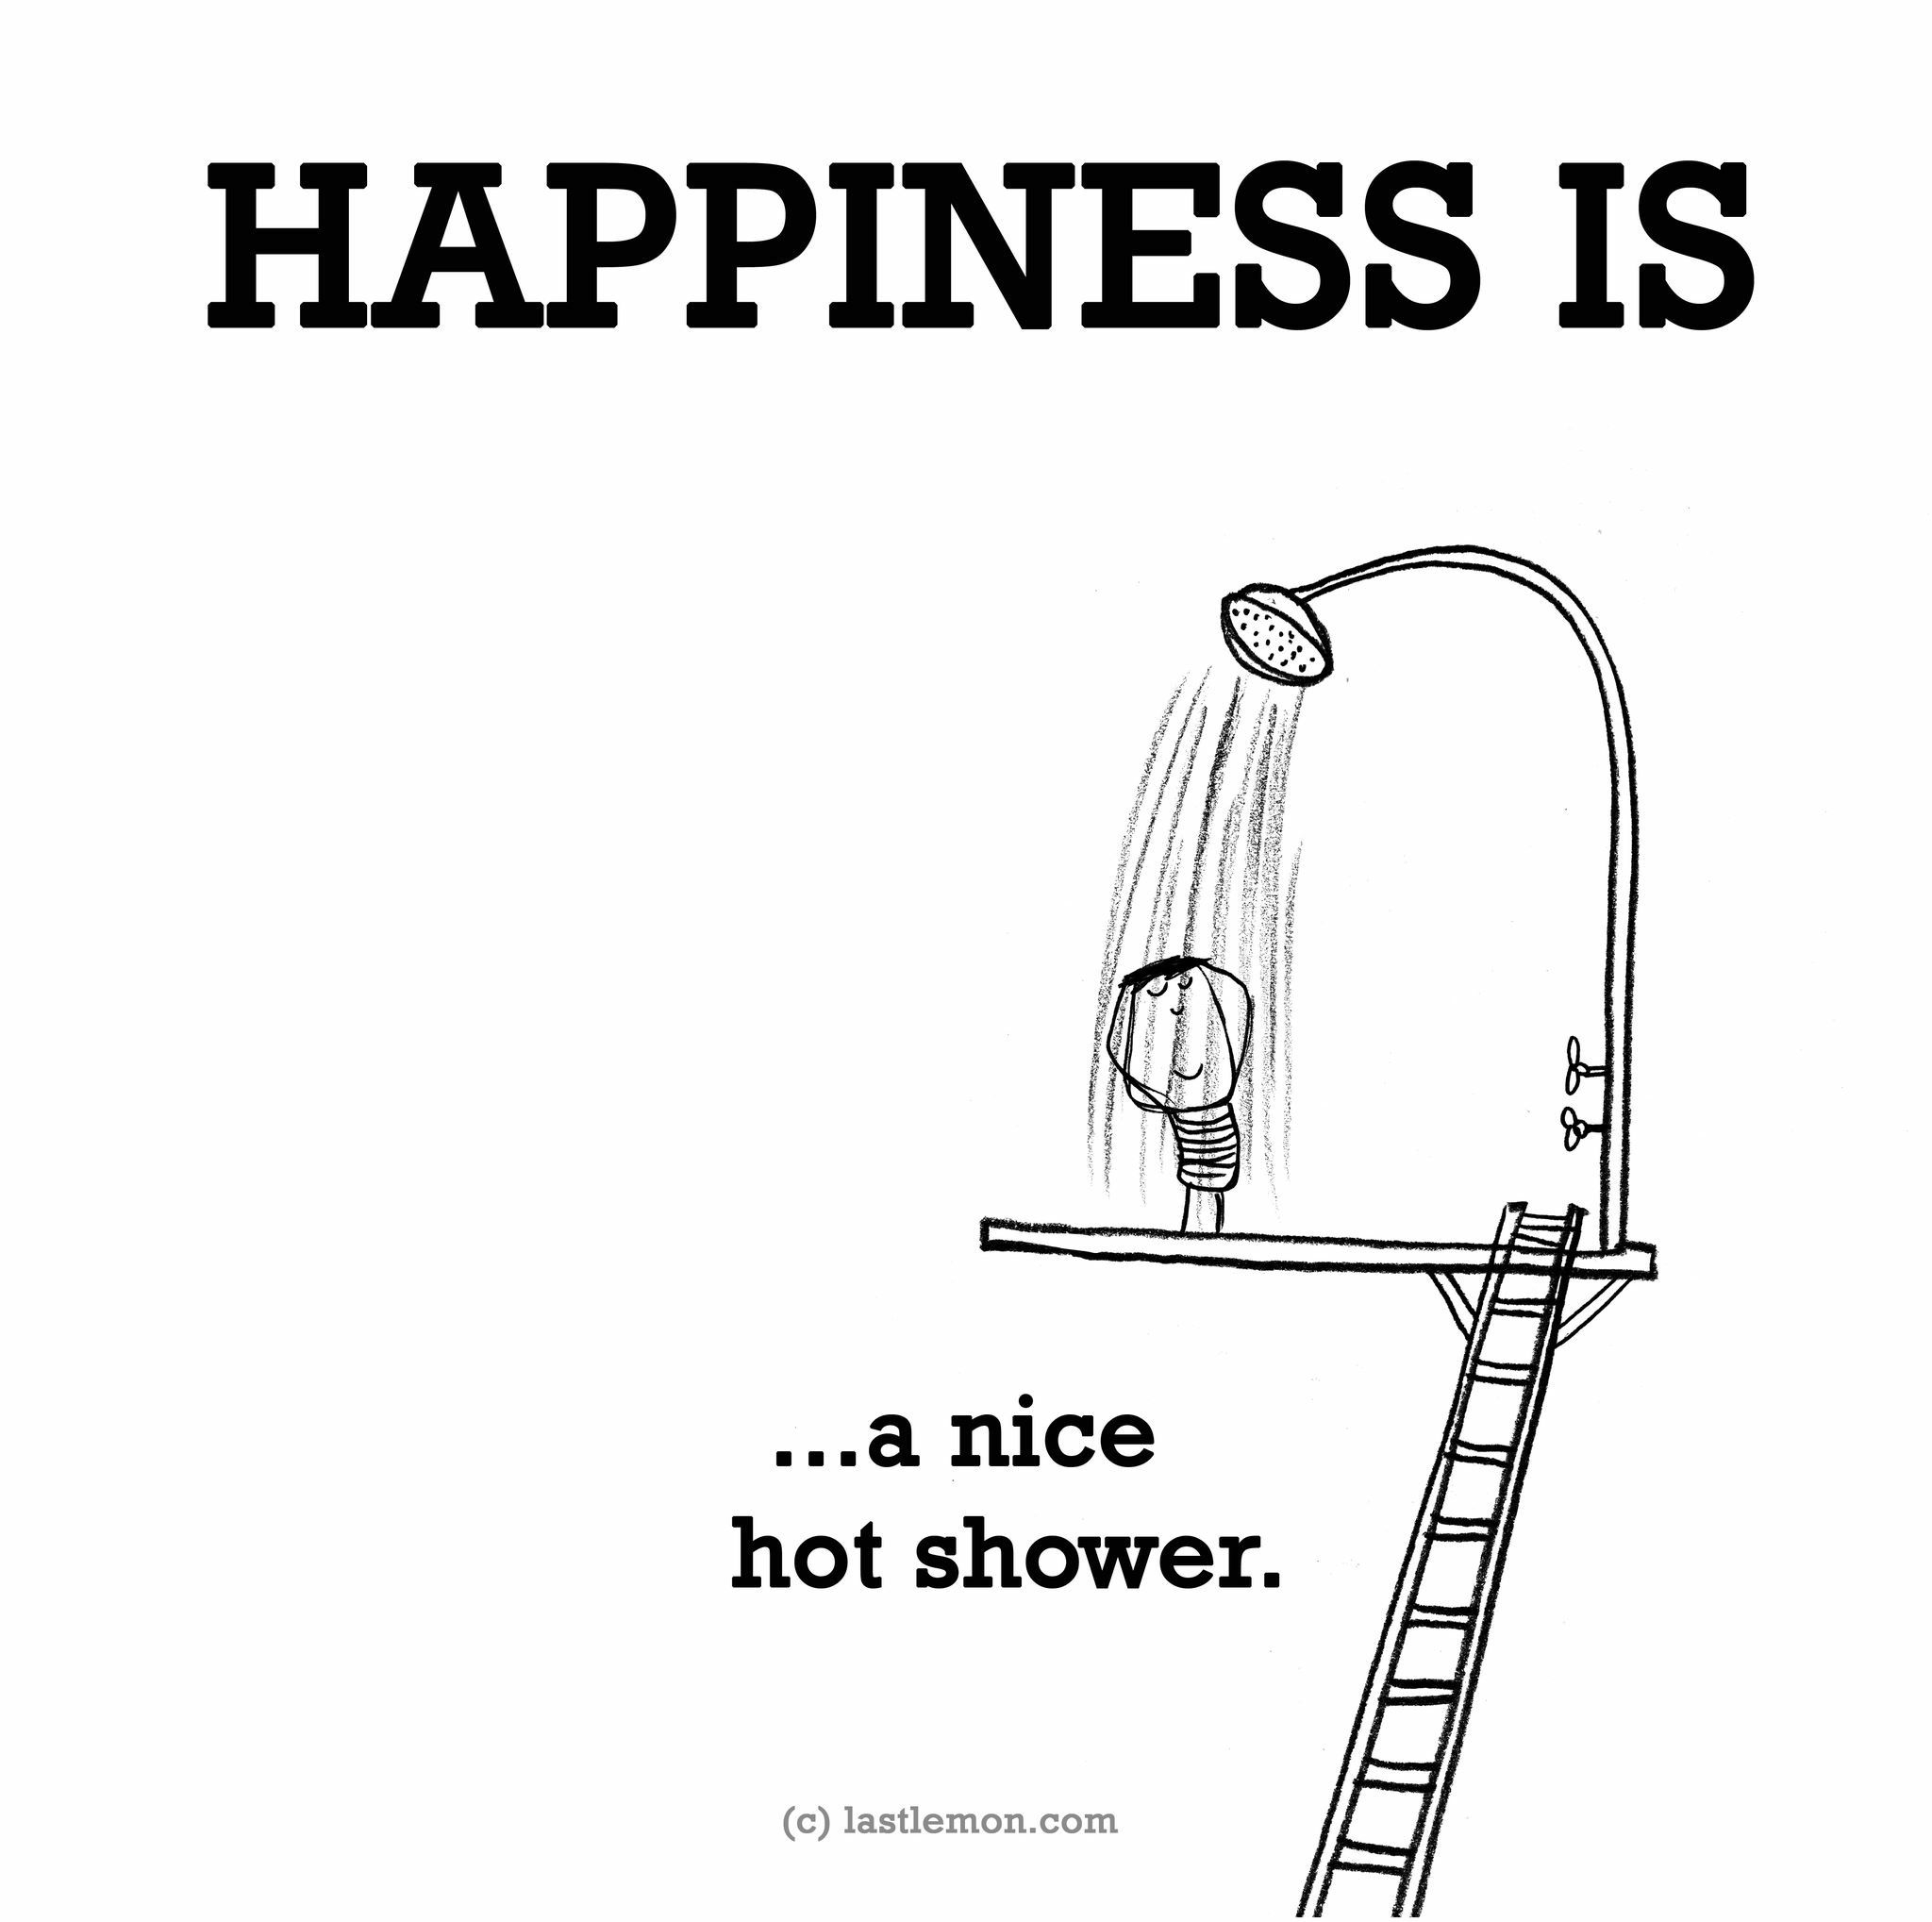 Pin by Johanna Aviles on Happiness is... | Happy quotes ...